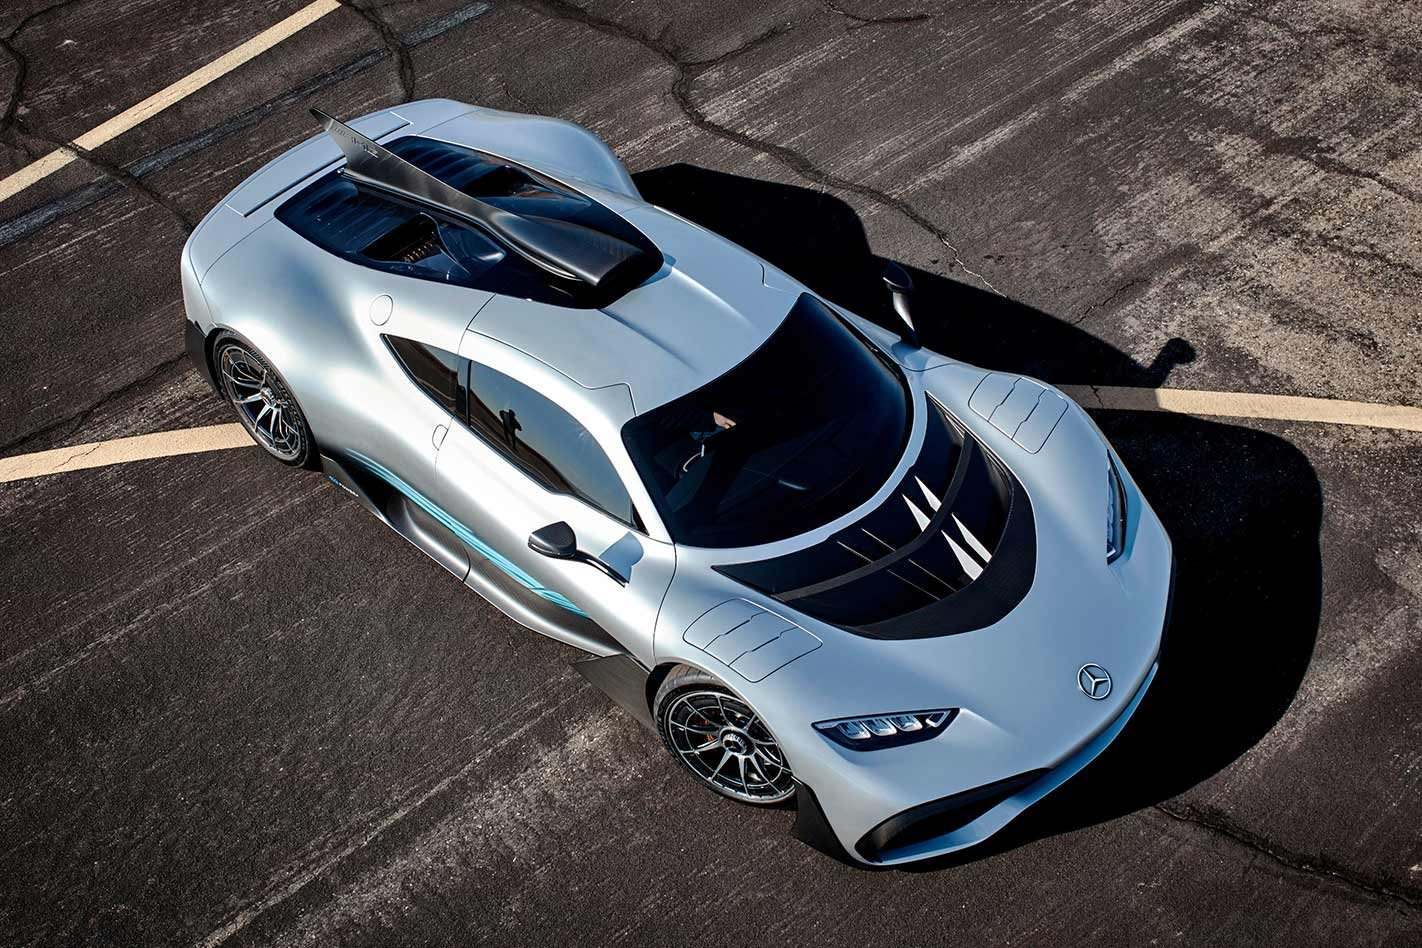 Mercedes-Benz AMG One project